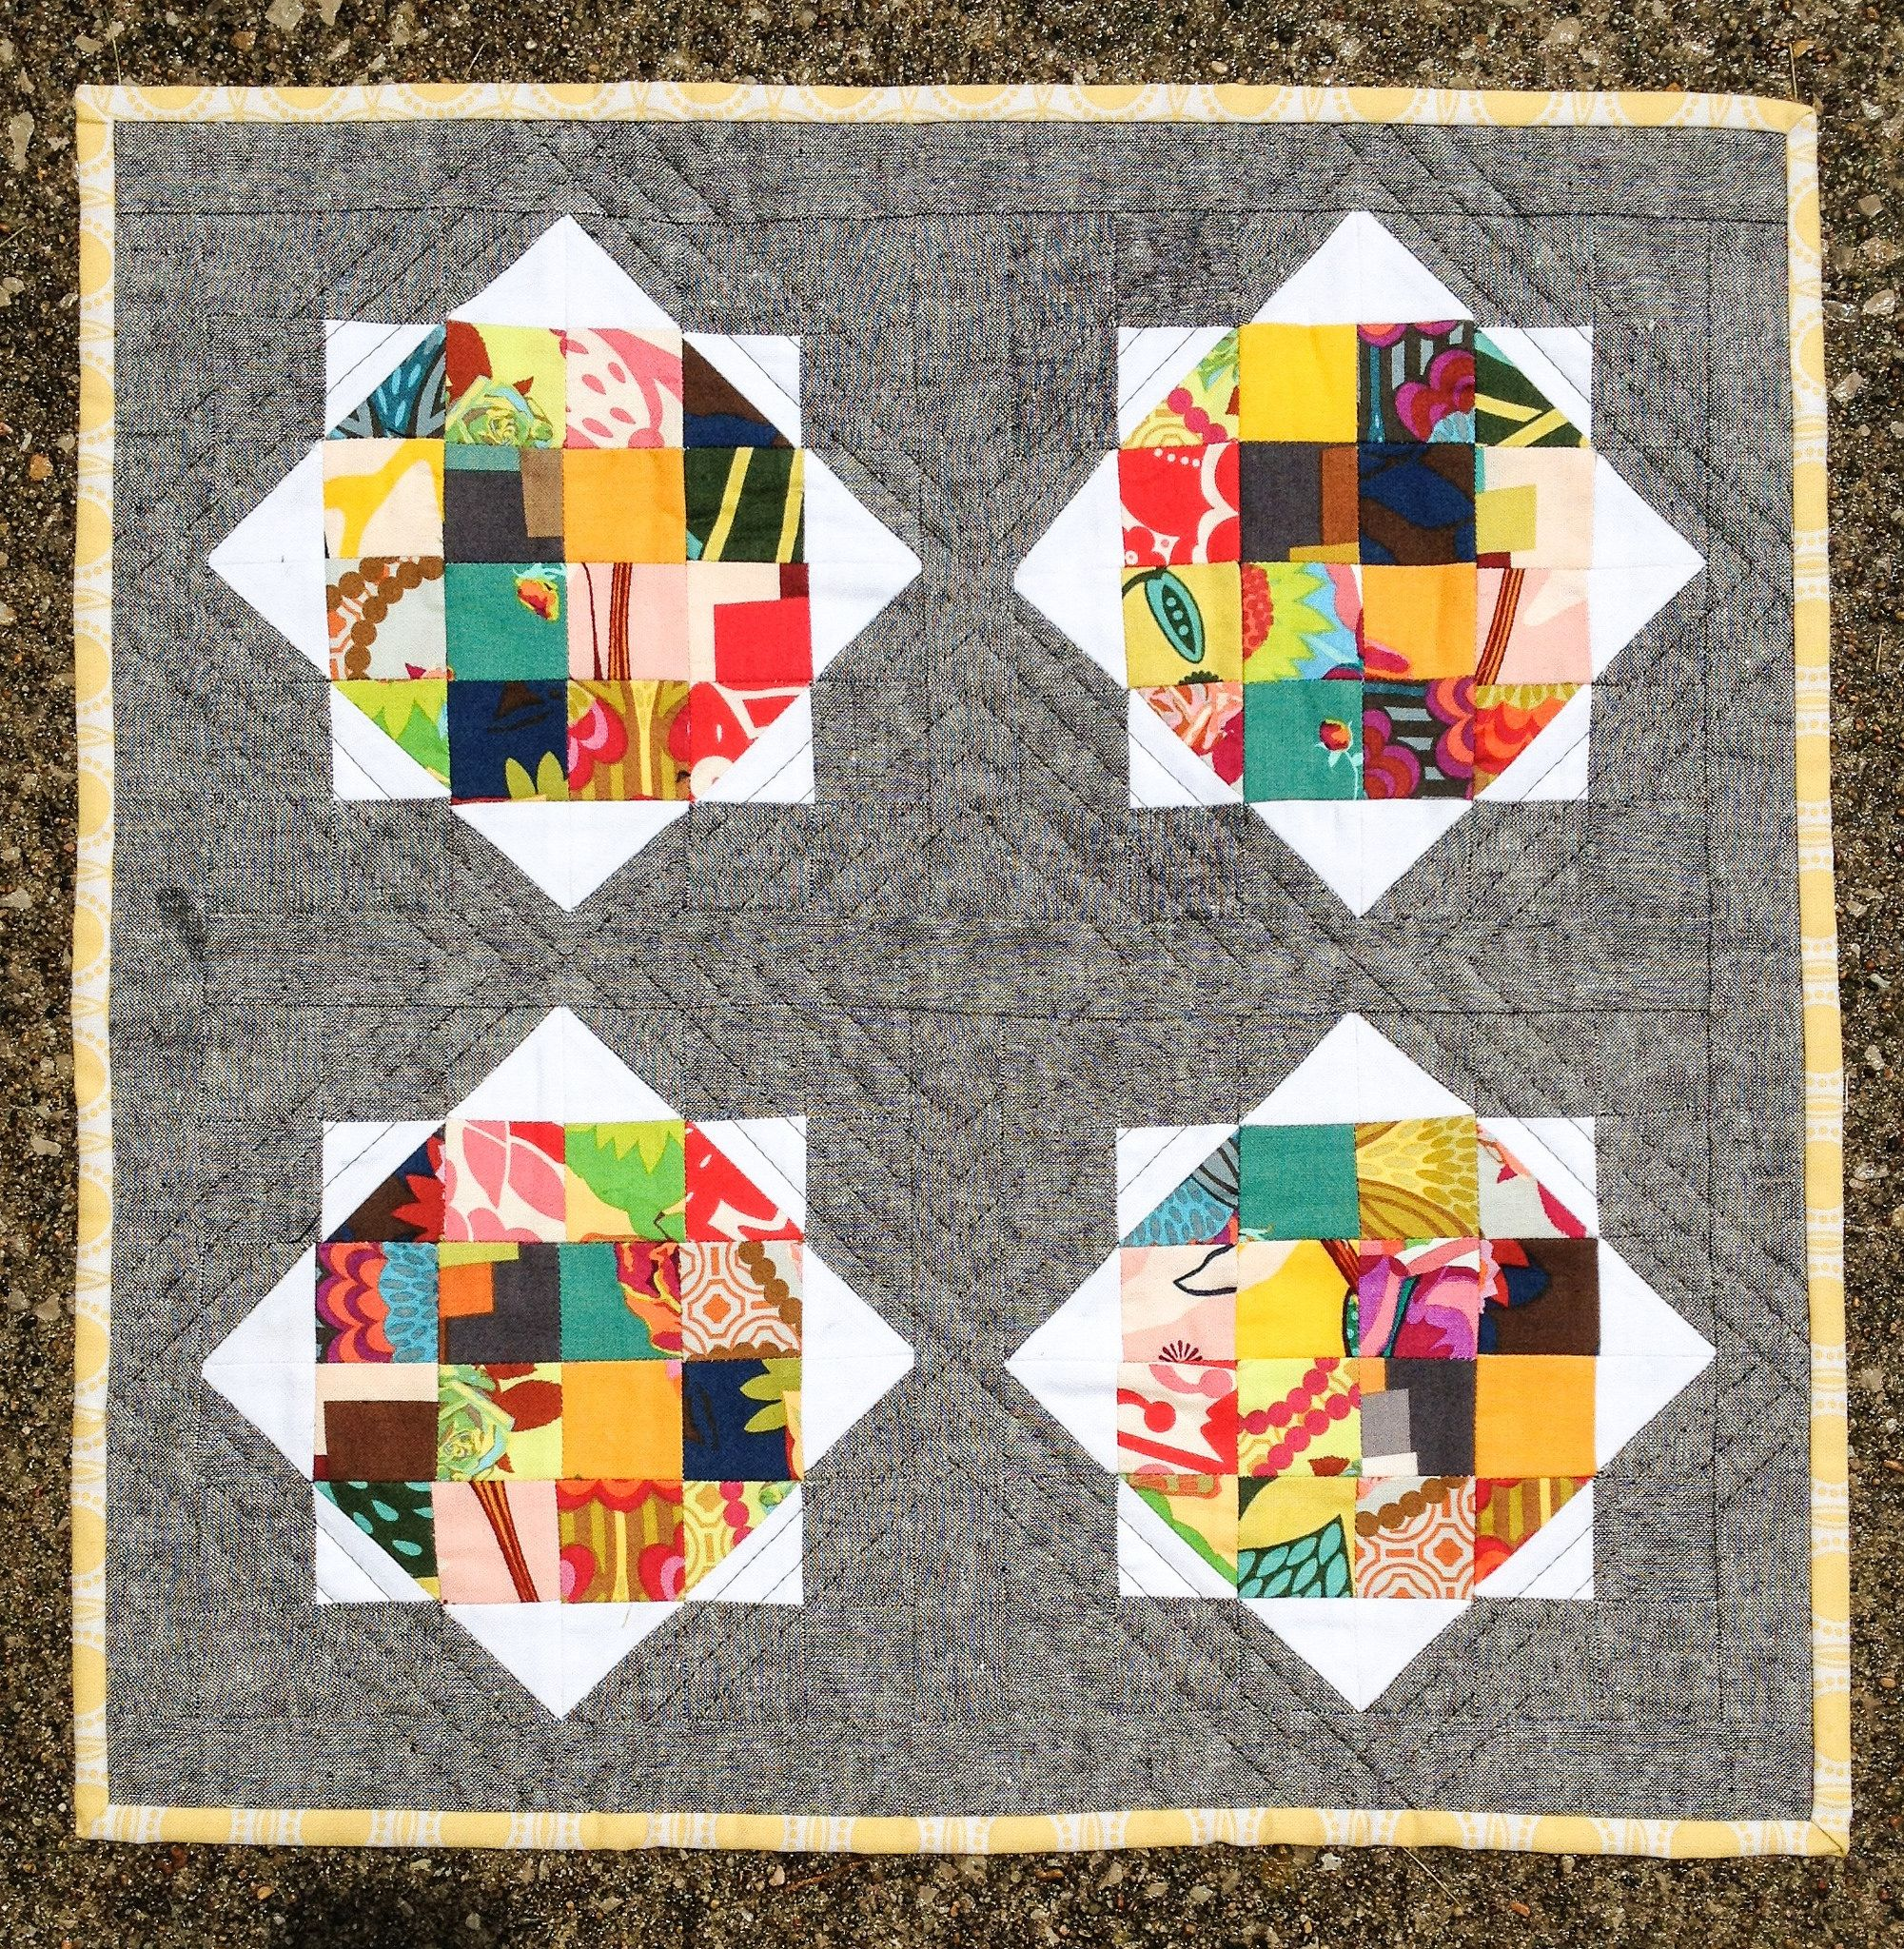 """https://flic.kr/p/ntDHzB   Mini Quilt Swap   Make a quilt, make a friend mini for my partner. A little bit of my partner's faves wrapped into one. AMH Hand Drawn with Essex dyed linen. """"Rise and Shine"""" pattern by Camille Roskelly. Binding is Joel Dewberry."""